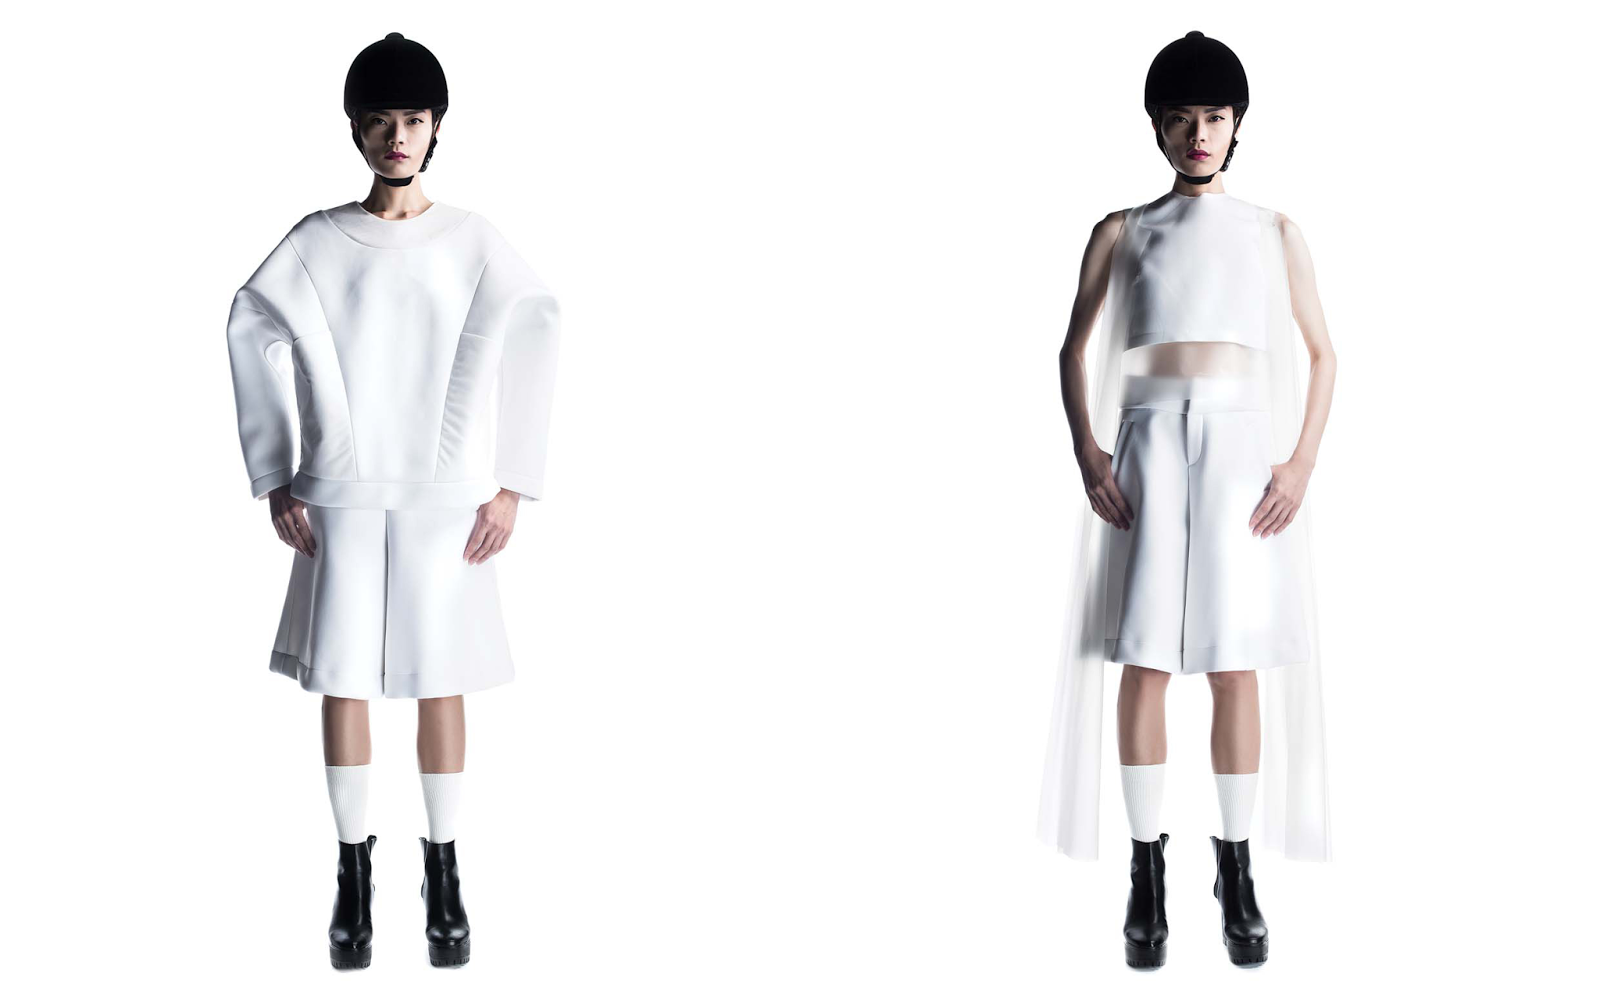 MaxTan spring summer 2015, MaxTan ss15, MaxTan, Max.Tan, Max Tan, Max.Tan SS15, vêtements androgynes, vêtements minimalistes, fashion week, du dessin aux podiums, dudessinauxpodiums, vintage look, dress to impress, dress for less, boho, unique vintage, alloy clothing, venus clothing, la moda, spring trends, tendance, tendance de mode, blog de mode, fashion blog,  blog mode, mode paris, paris mode, fashion news, designer, fashion designer, moda in pelle, ross dress for less, fashion magazines, fashion blogs, mode a toi, revista de moda, vintage, vintage definition, vintage retro, top fashion, suits online, blog de moda, blog moda, ropa, asos dresses, blogs de moda, dresses, tunique femme, vetements femmes, fashion tops, womens fashions, vetement tendance, fashion dresses, ladies clothes, robes de soiree, robe bustier, robe sexy, sexy dress